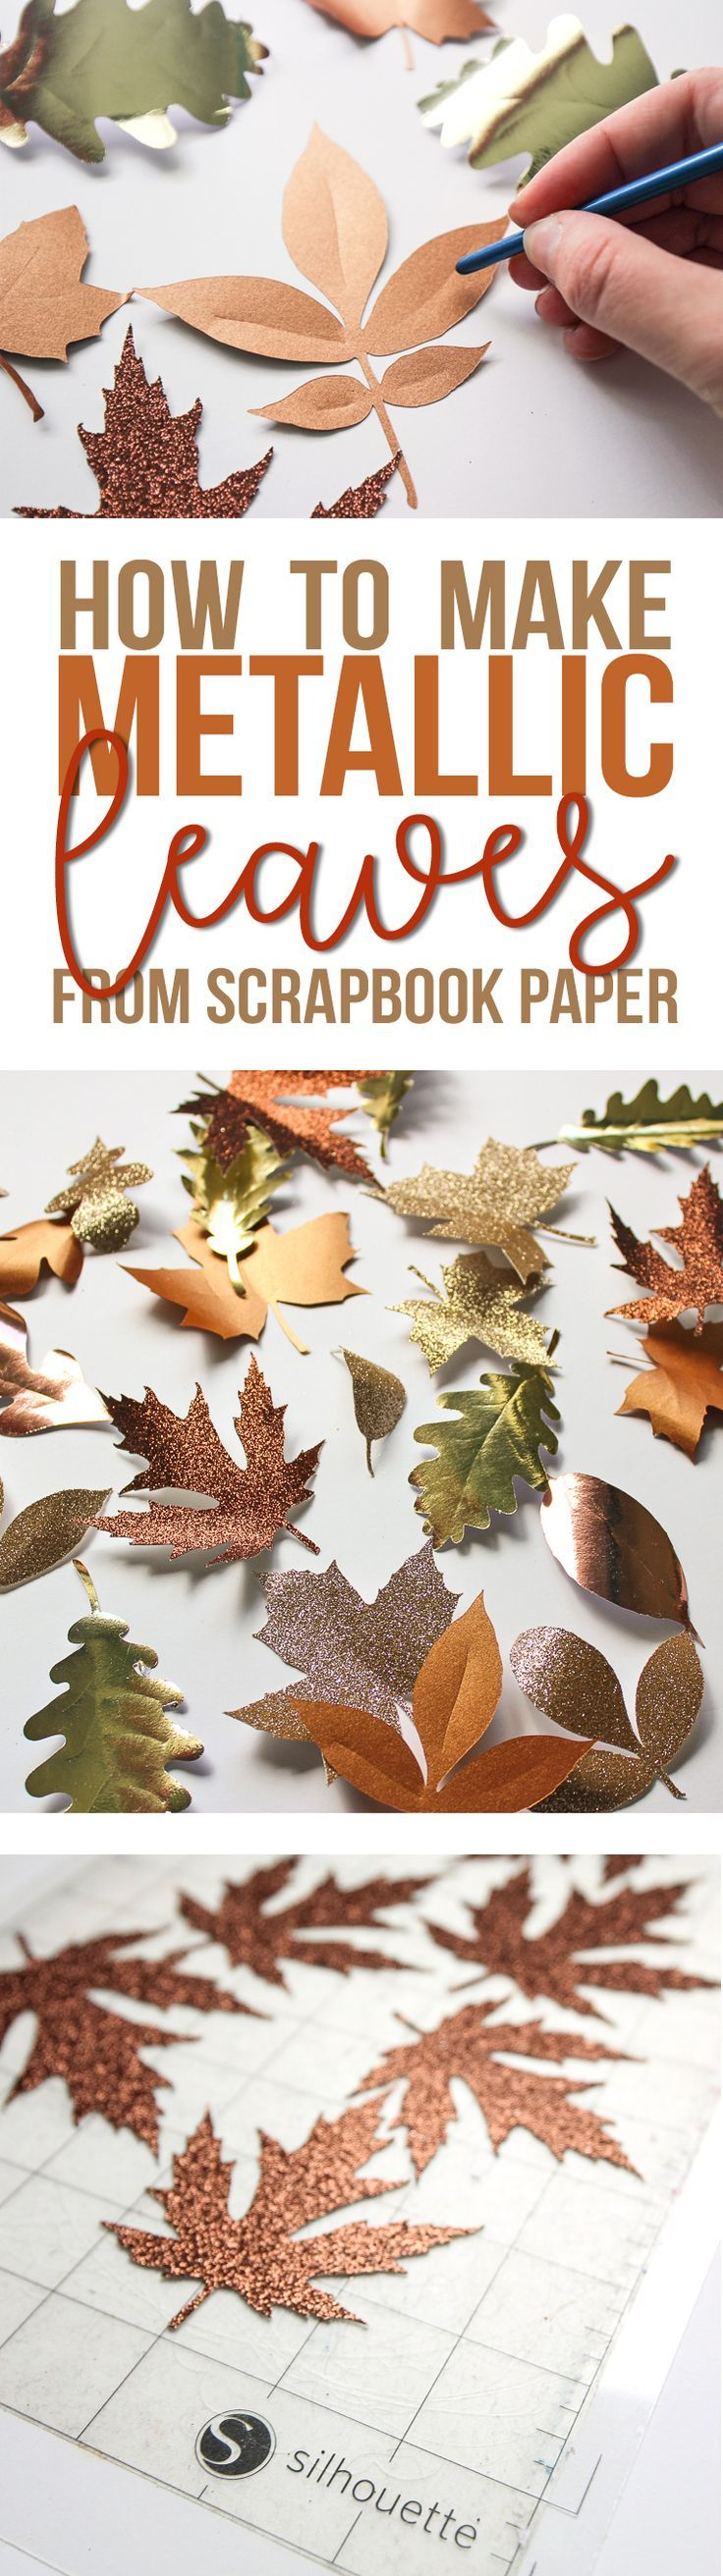 Use your Silhouette machine to make these beautiful and realistically shaped fall leaves out of paper. They are gorgeous in mixed metallic shades of gold, copper, rose gold and champagne. In love with this easy fall craft!